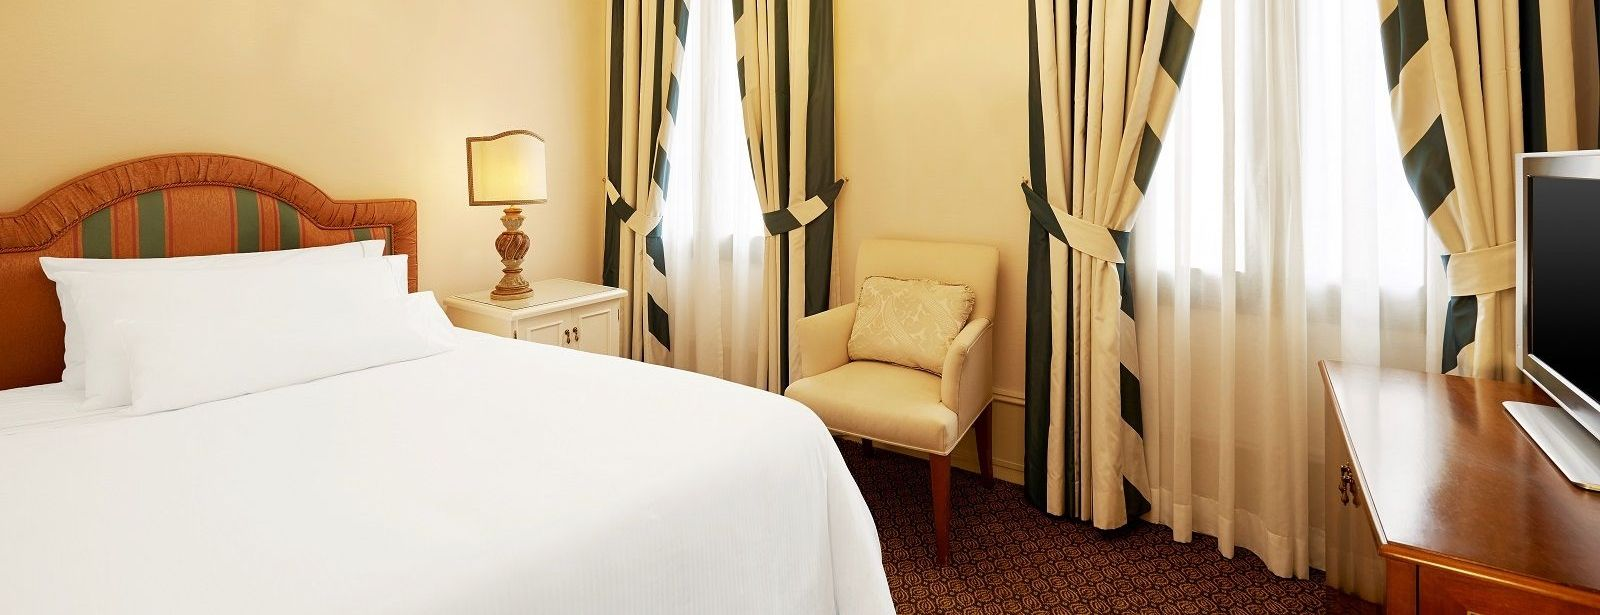 Image of the Cosy Single Room at The Westin Europa & Regina, Venice